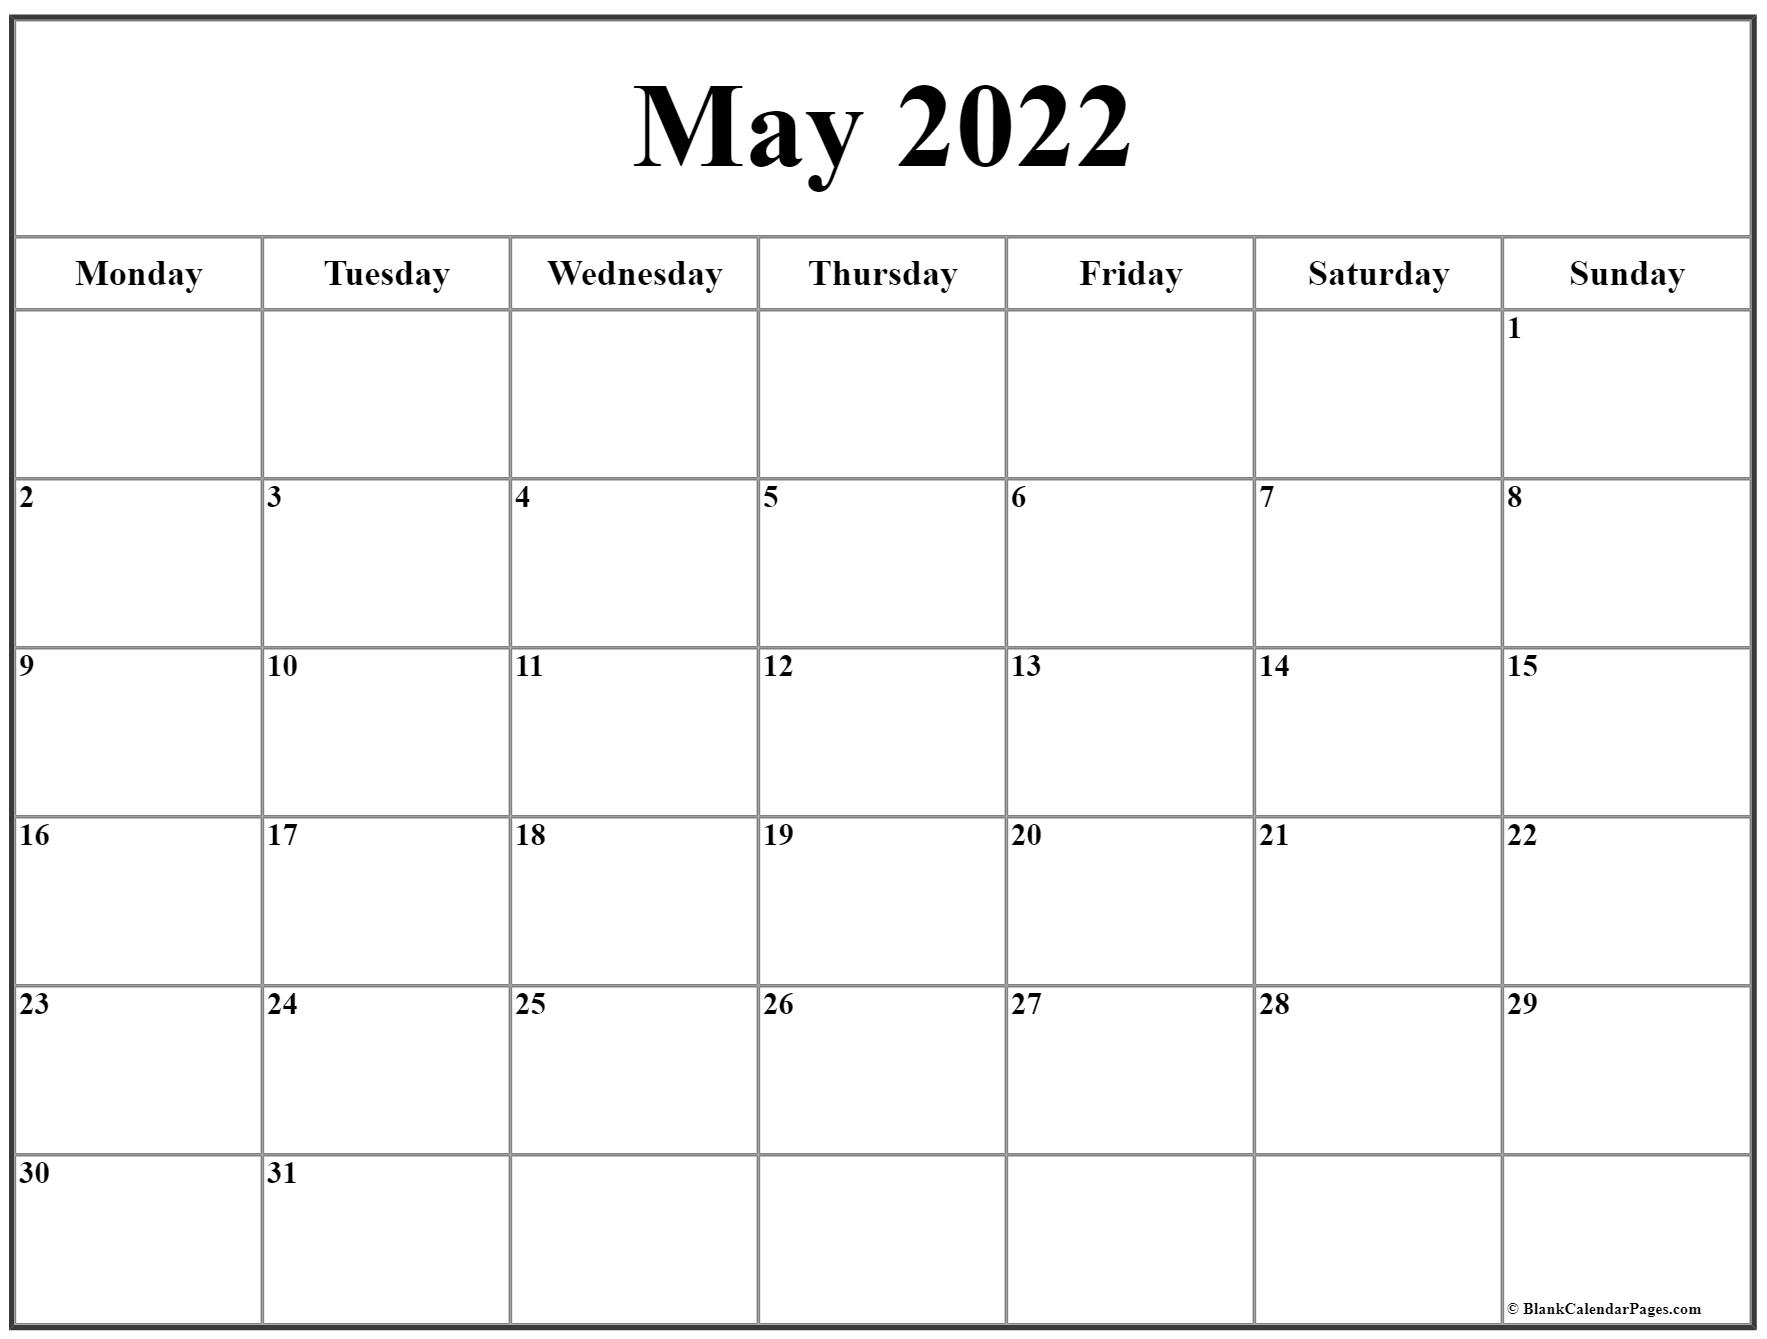 Download or print this free 2022 calendar in pdf, word or excel format. May 2022 Monday Calendar   Monday to Sunday